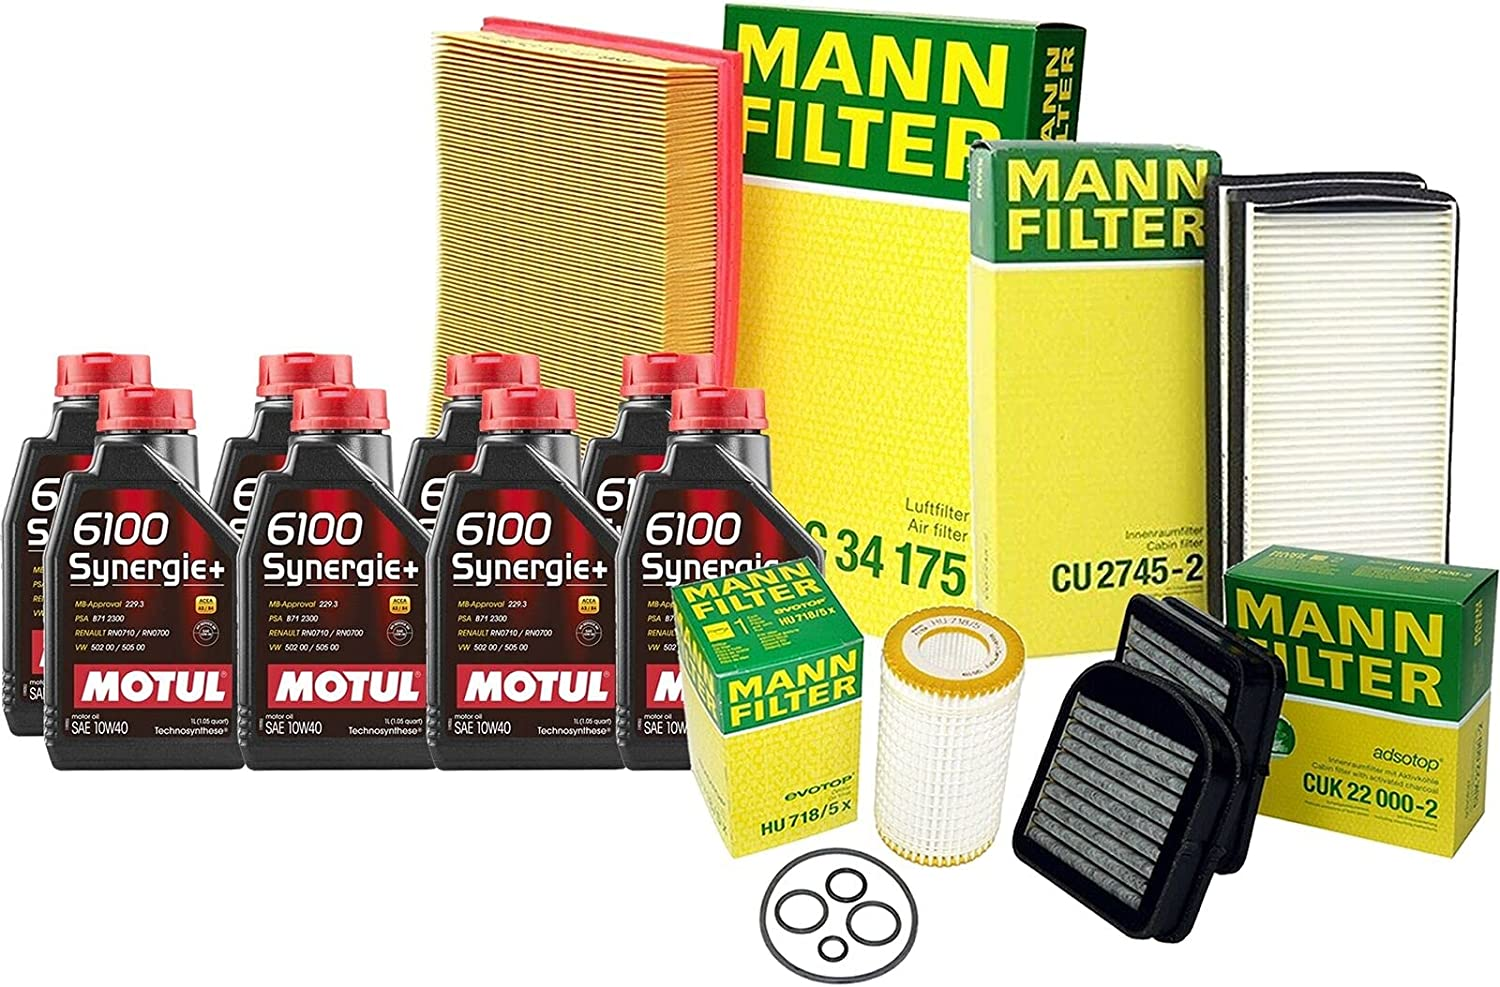 8L 6100 SYNERGIE10W40 Oil Filter S21 Compatible Kit Service Max 62% OFF High quality with